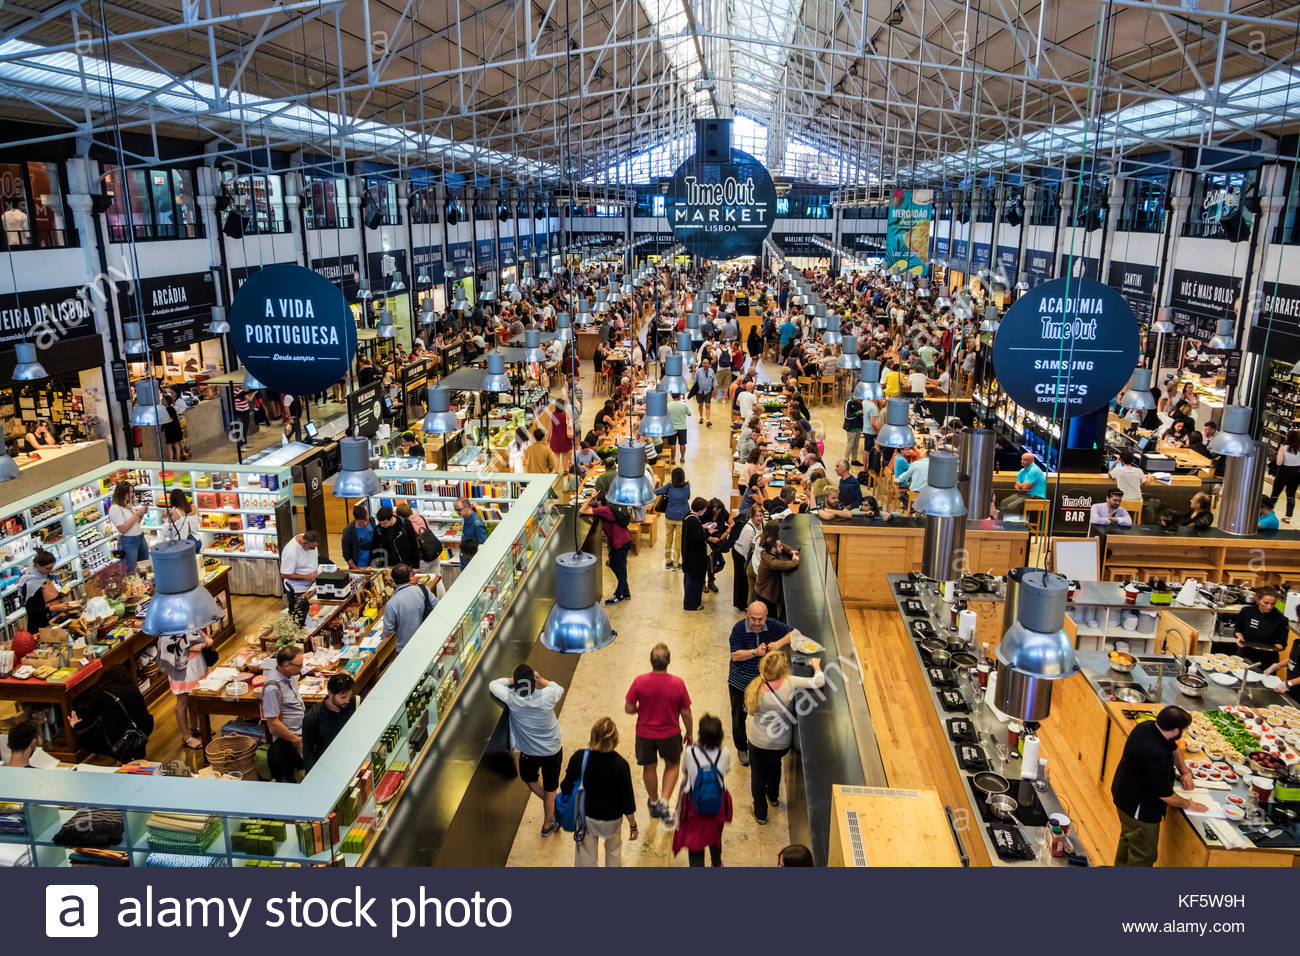 Lisbon Portugal Cais do Sodre Mercado Da Ribeira Time Out Market market  hall food court dining tables crowded busy aisles overhead view Hispanic  resta 782f470fb6258